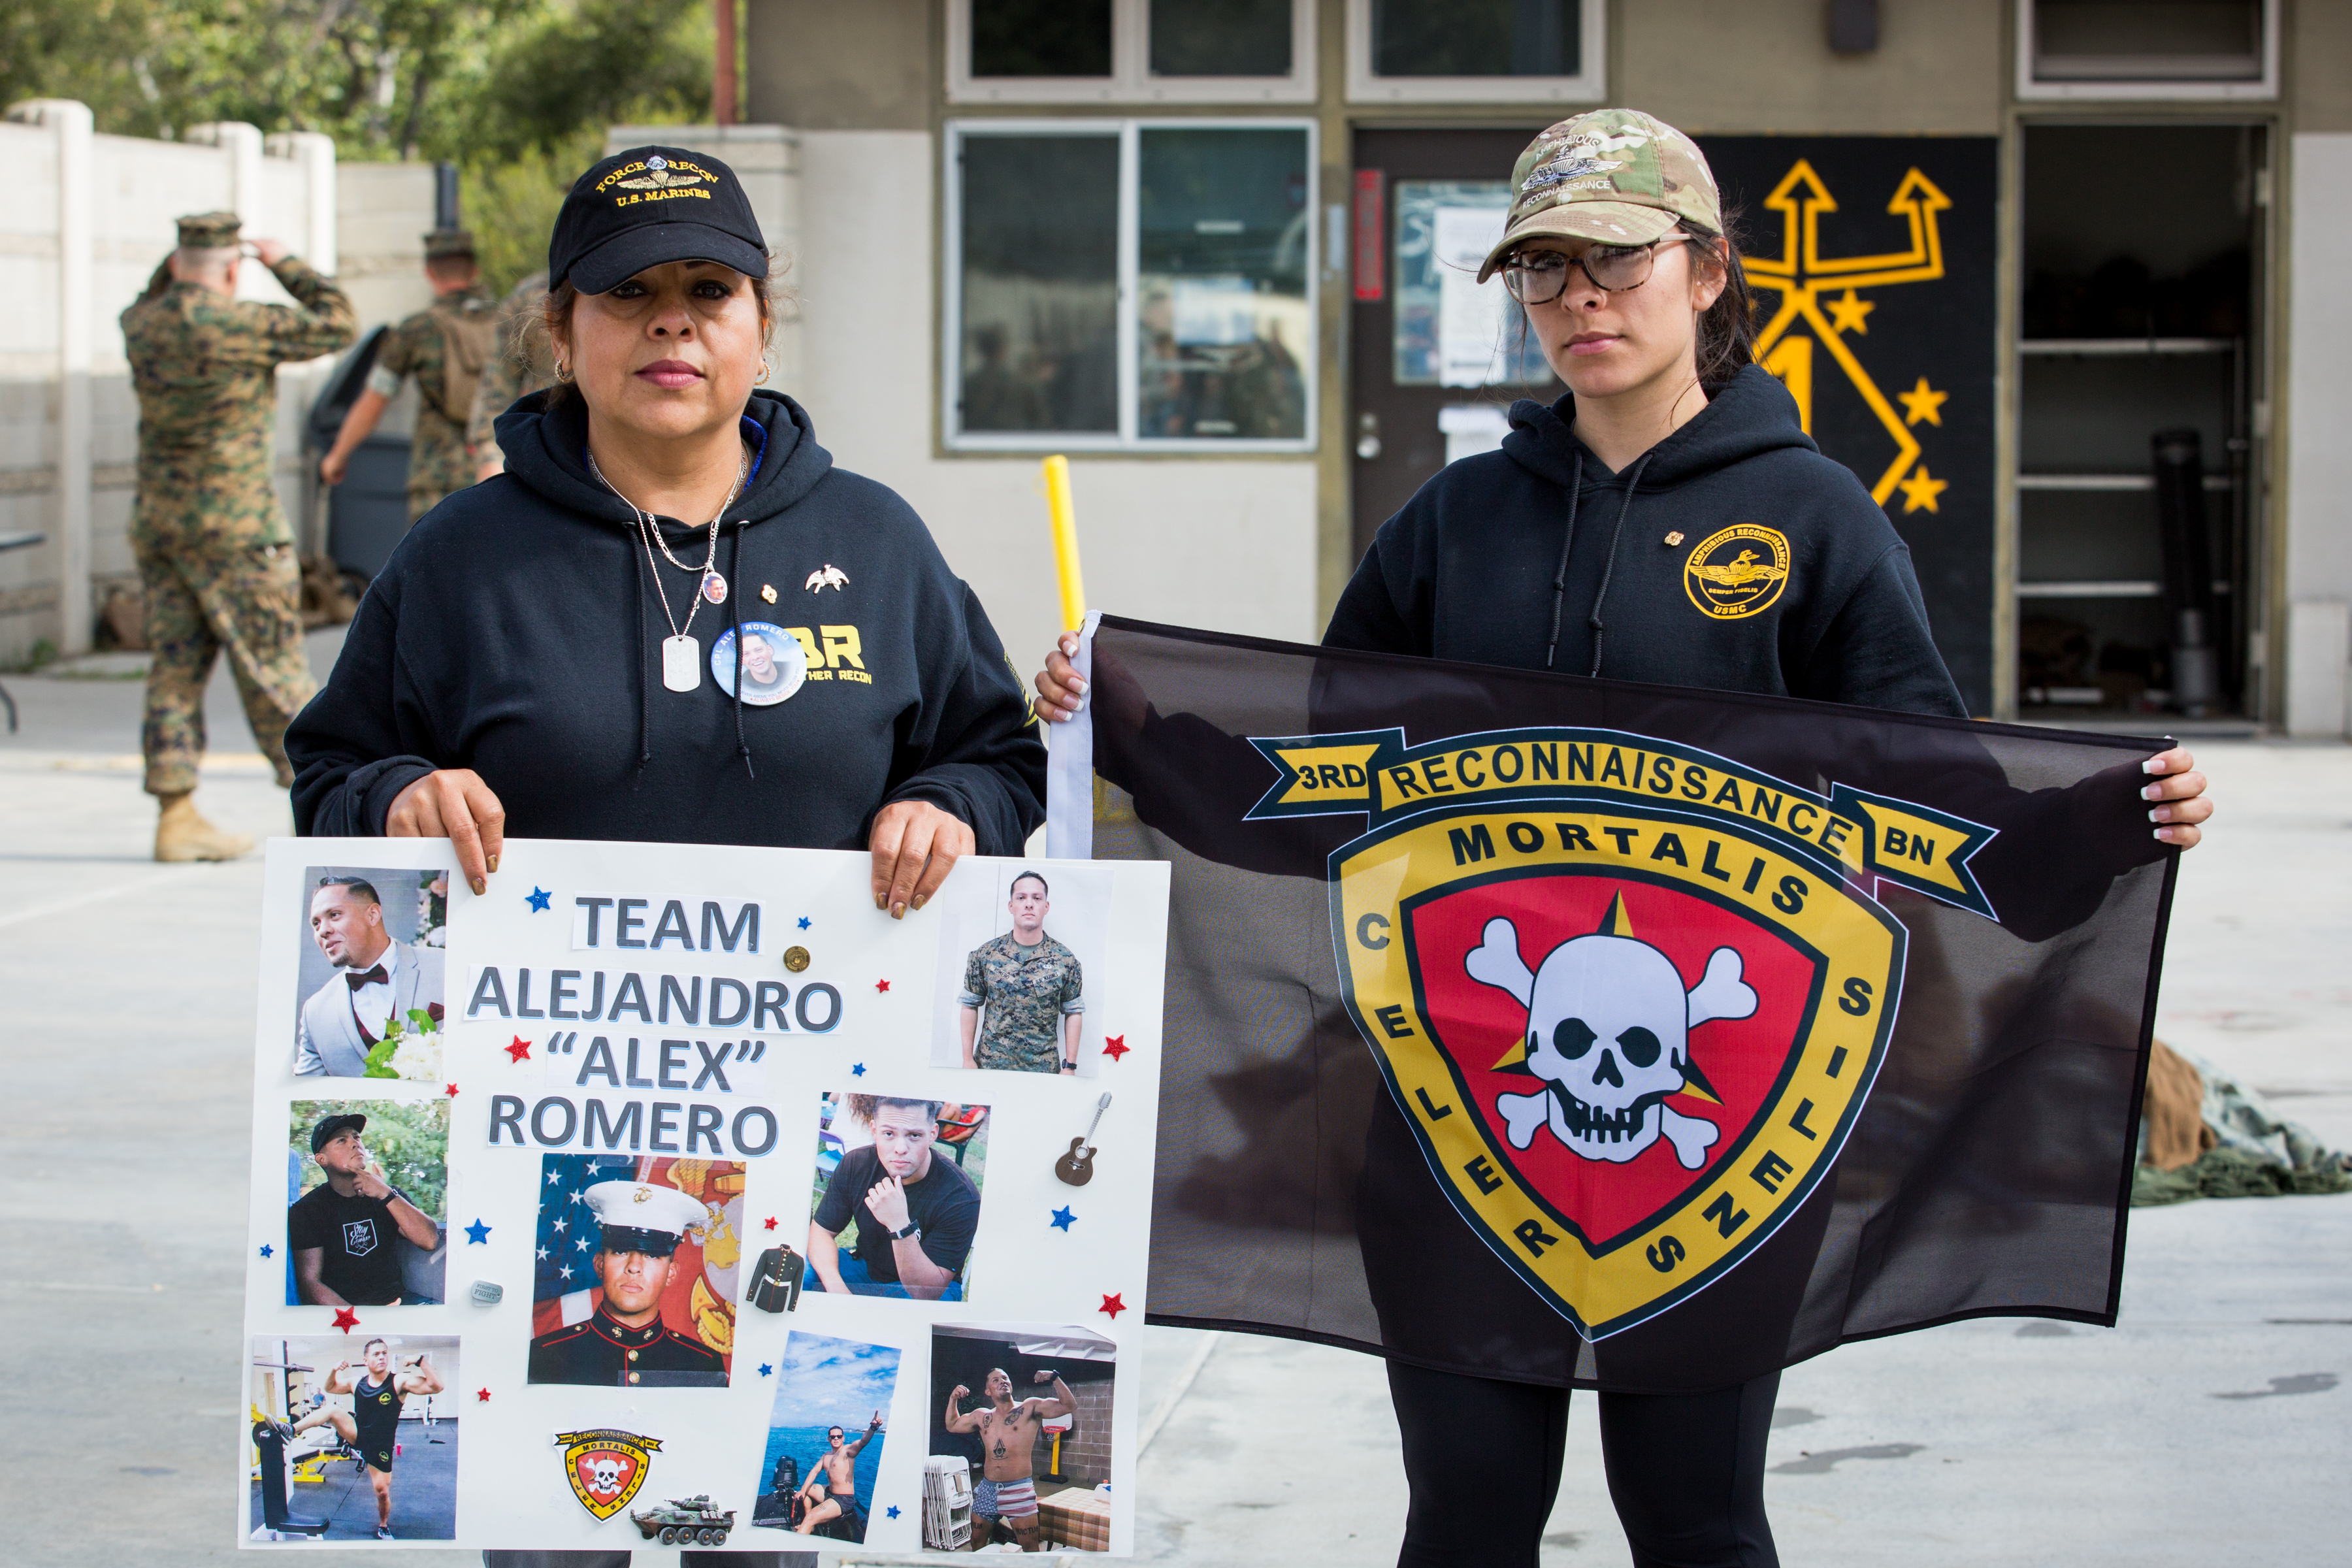 54 year old Maria Romero and her daughter-in-law, 23 year old Dani Romero, come to the Recon Challenge in memory of Alex Romero Thursday at Camp Pendleton.